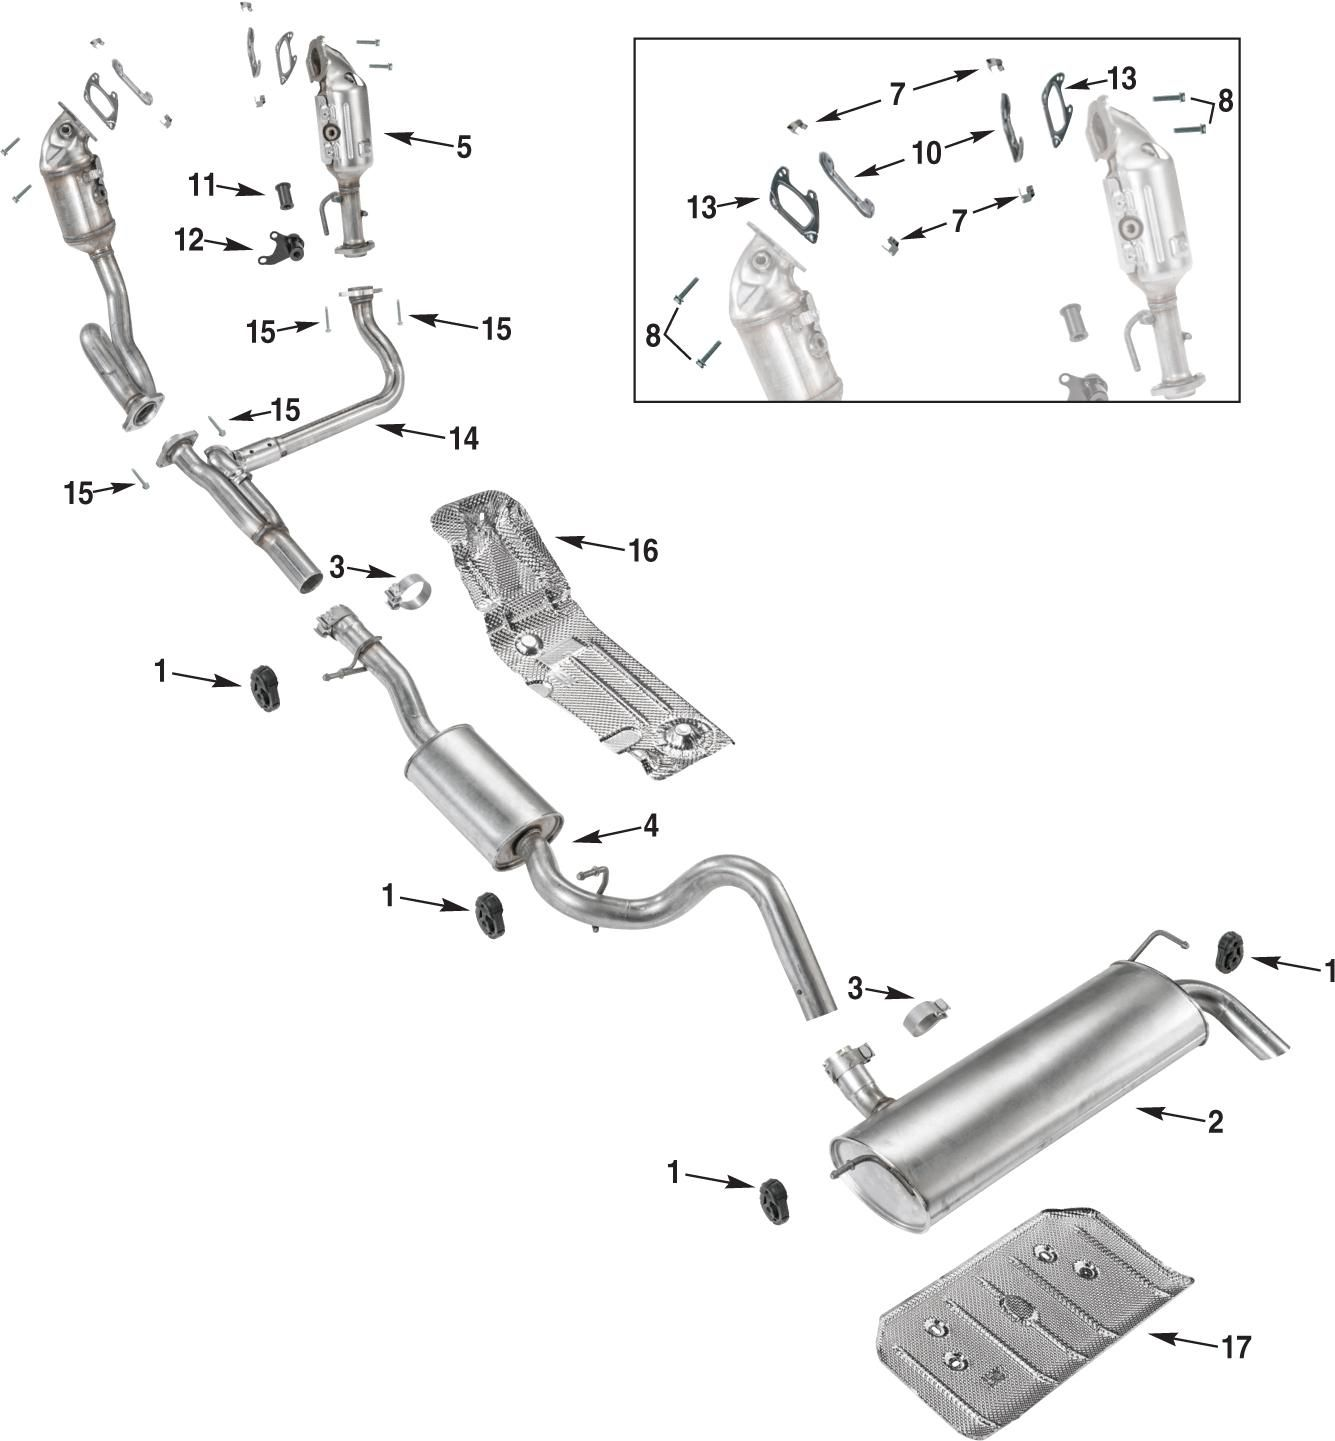 Yj Exhaust Diagram Wiring Library Pics Photos Parts Detail For System Jeep Wrangler Jk Educational Roll Cage